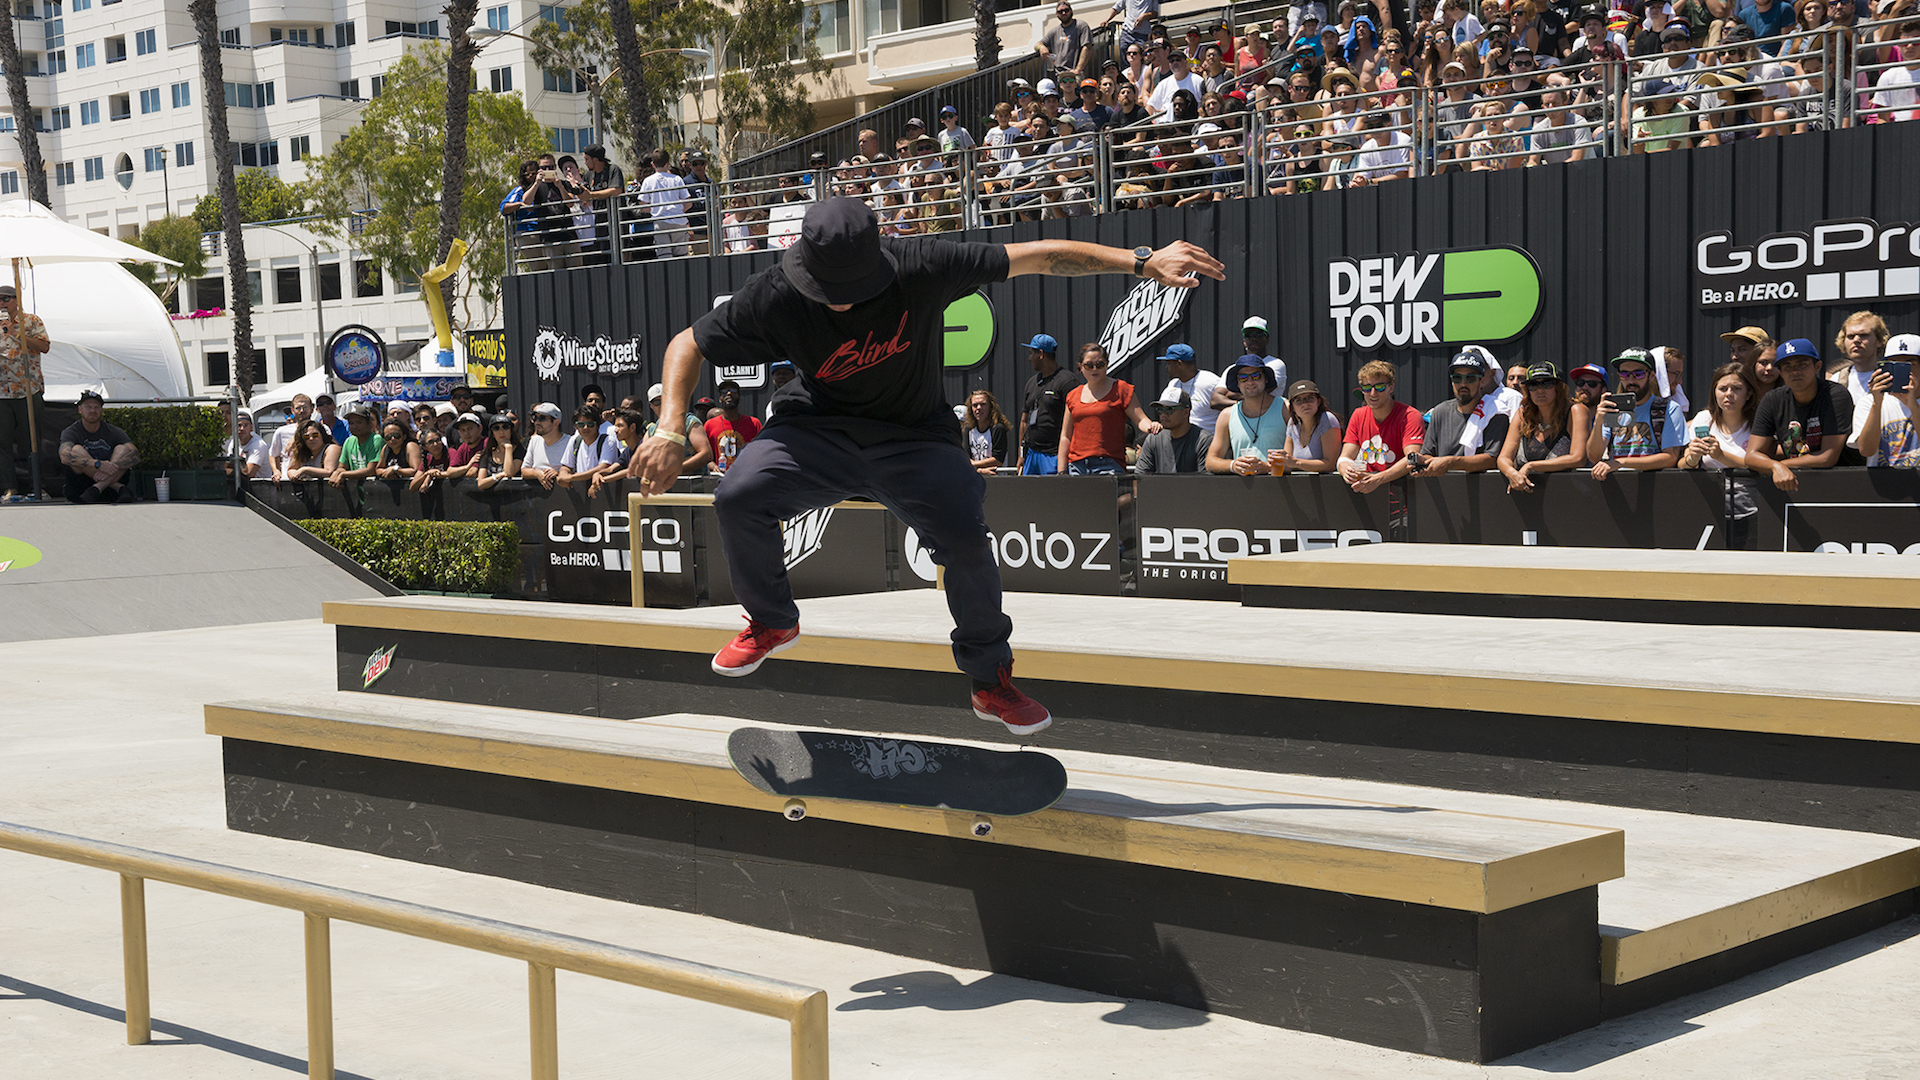 In the first heat of the first section, TJ Rogers set the stage for the Team Challenge by earning the top score and landing tricks like this nollie kickflip noseslide 270 shuv out. Photo: Chami